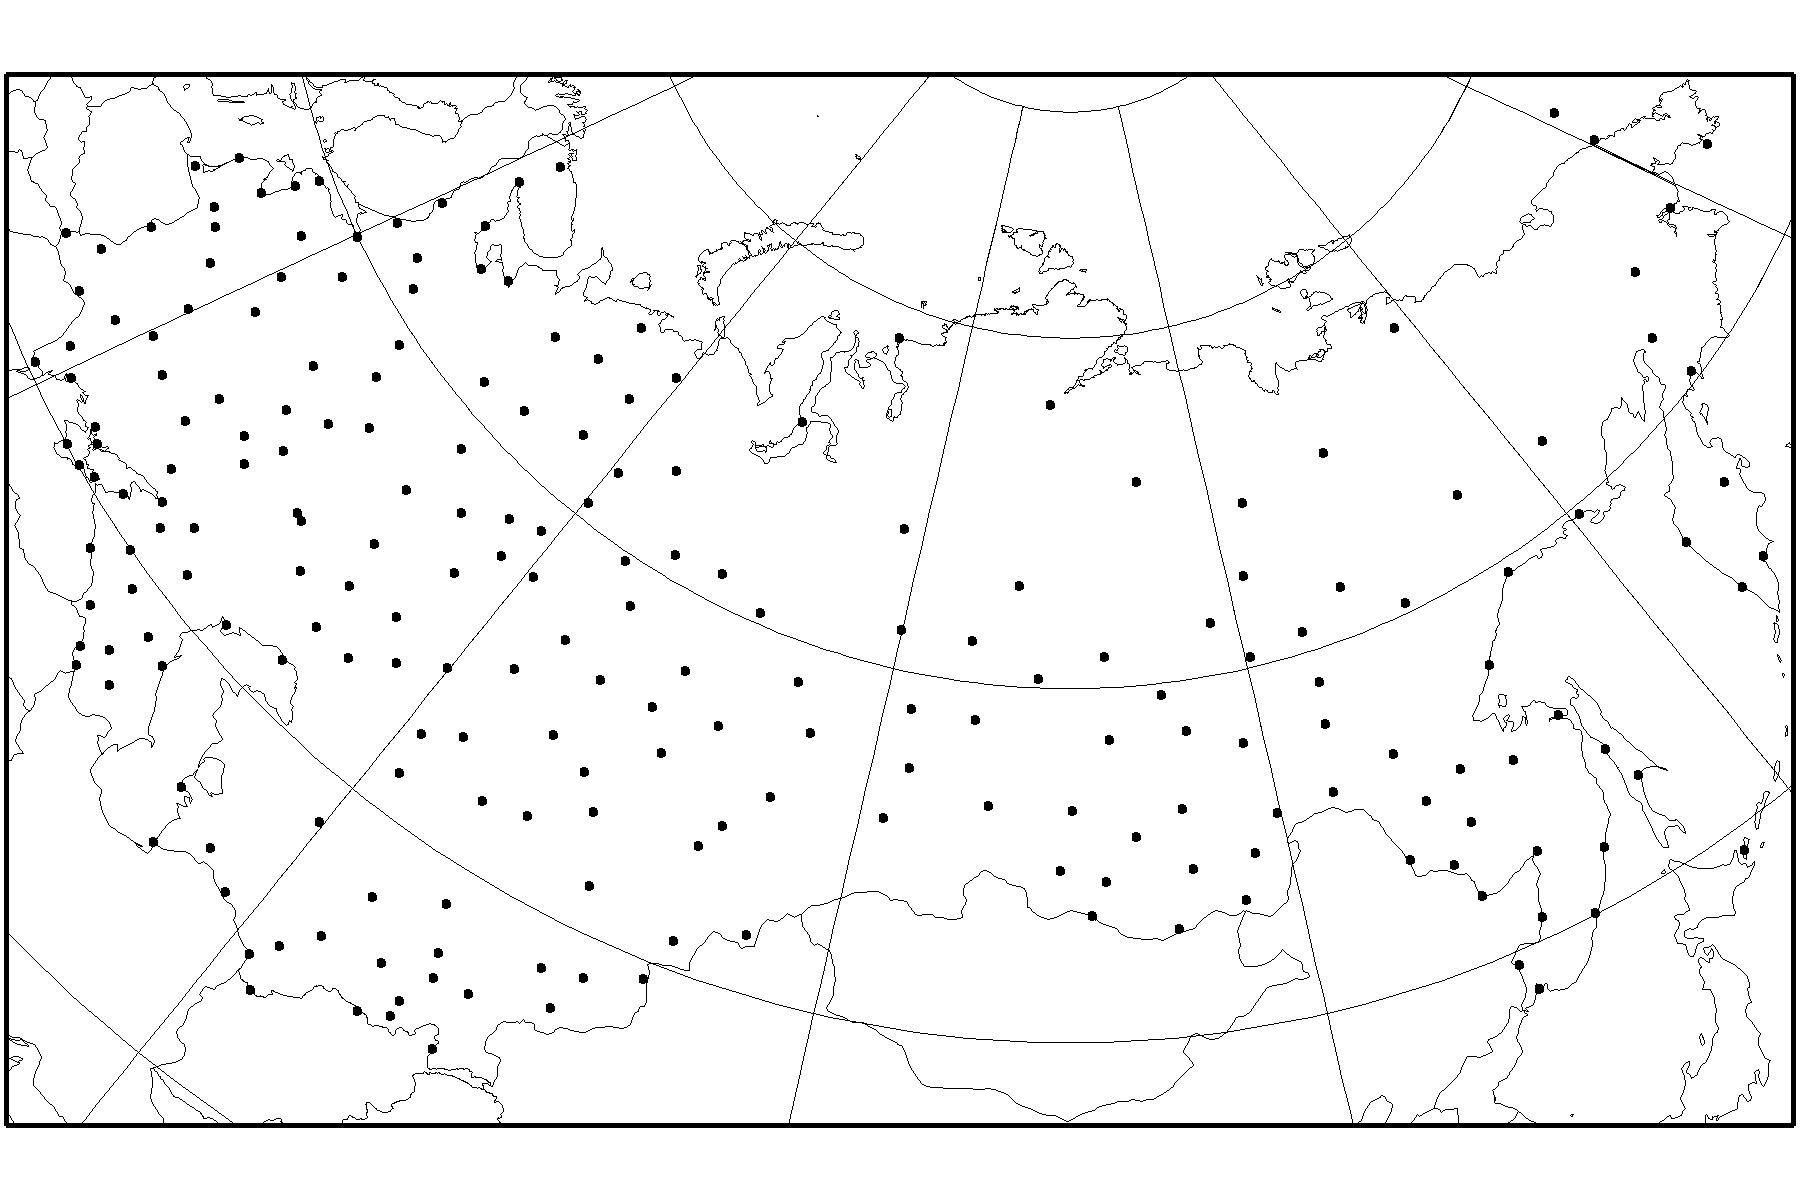 Daily Temperature and Precipitation Data from 223 Former-USSR Stations